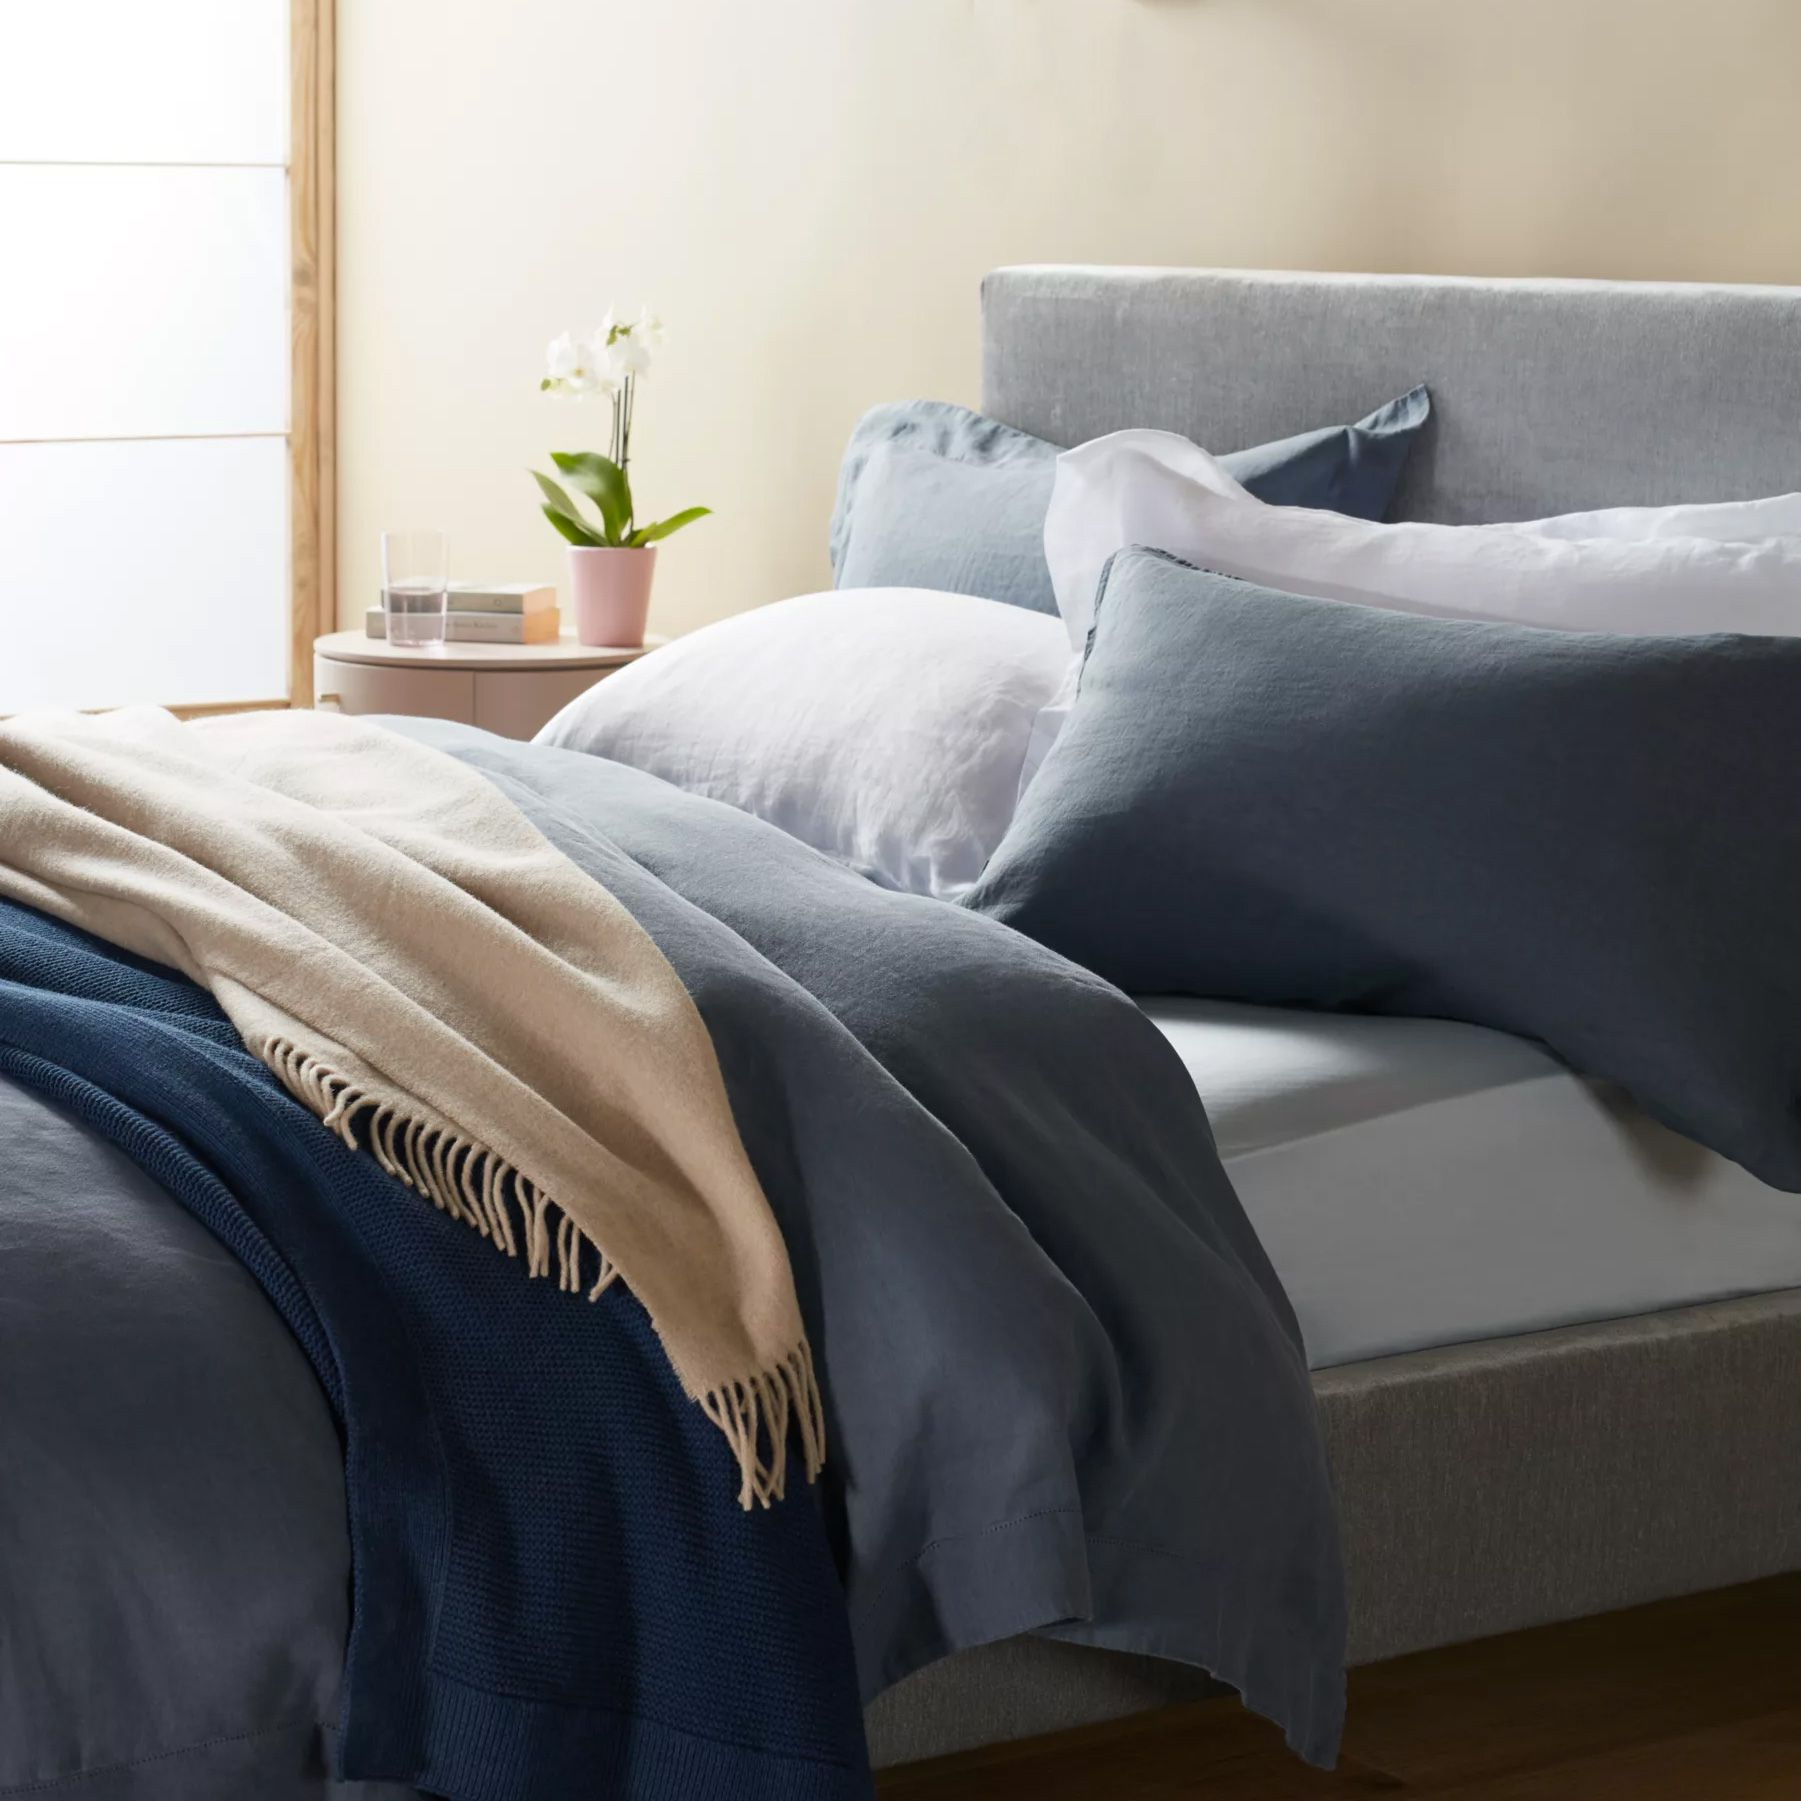 Enjoy sweet slumbers with the perfect duvet and pillow